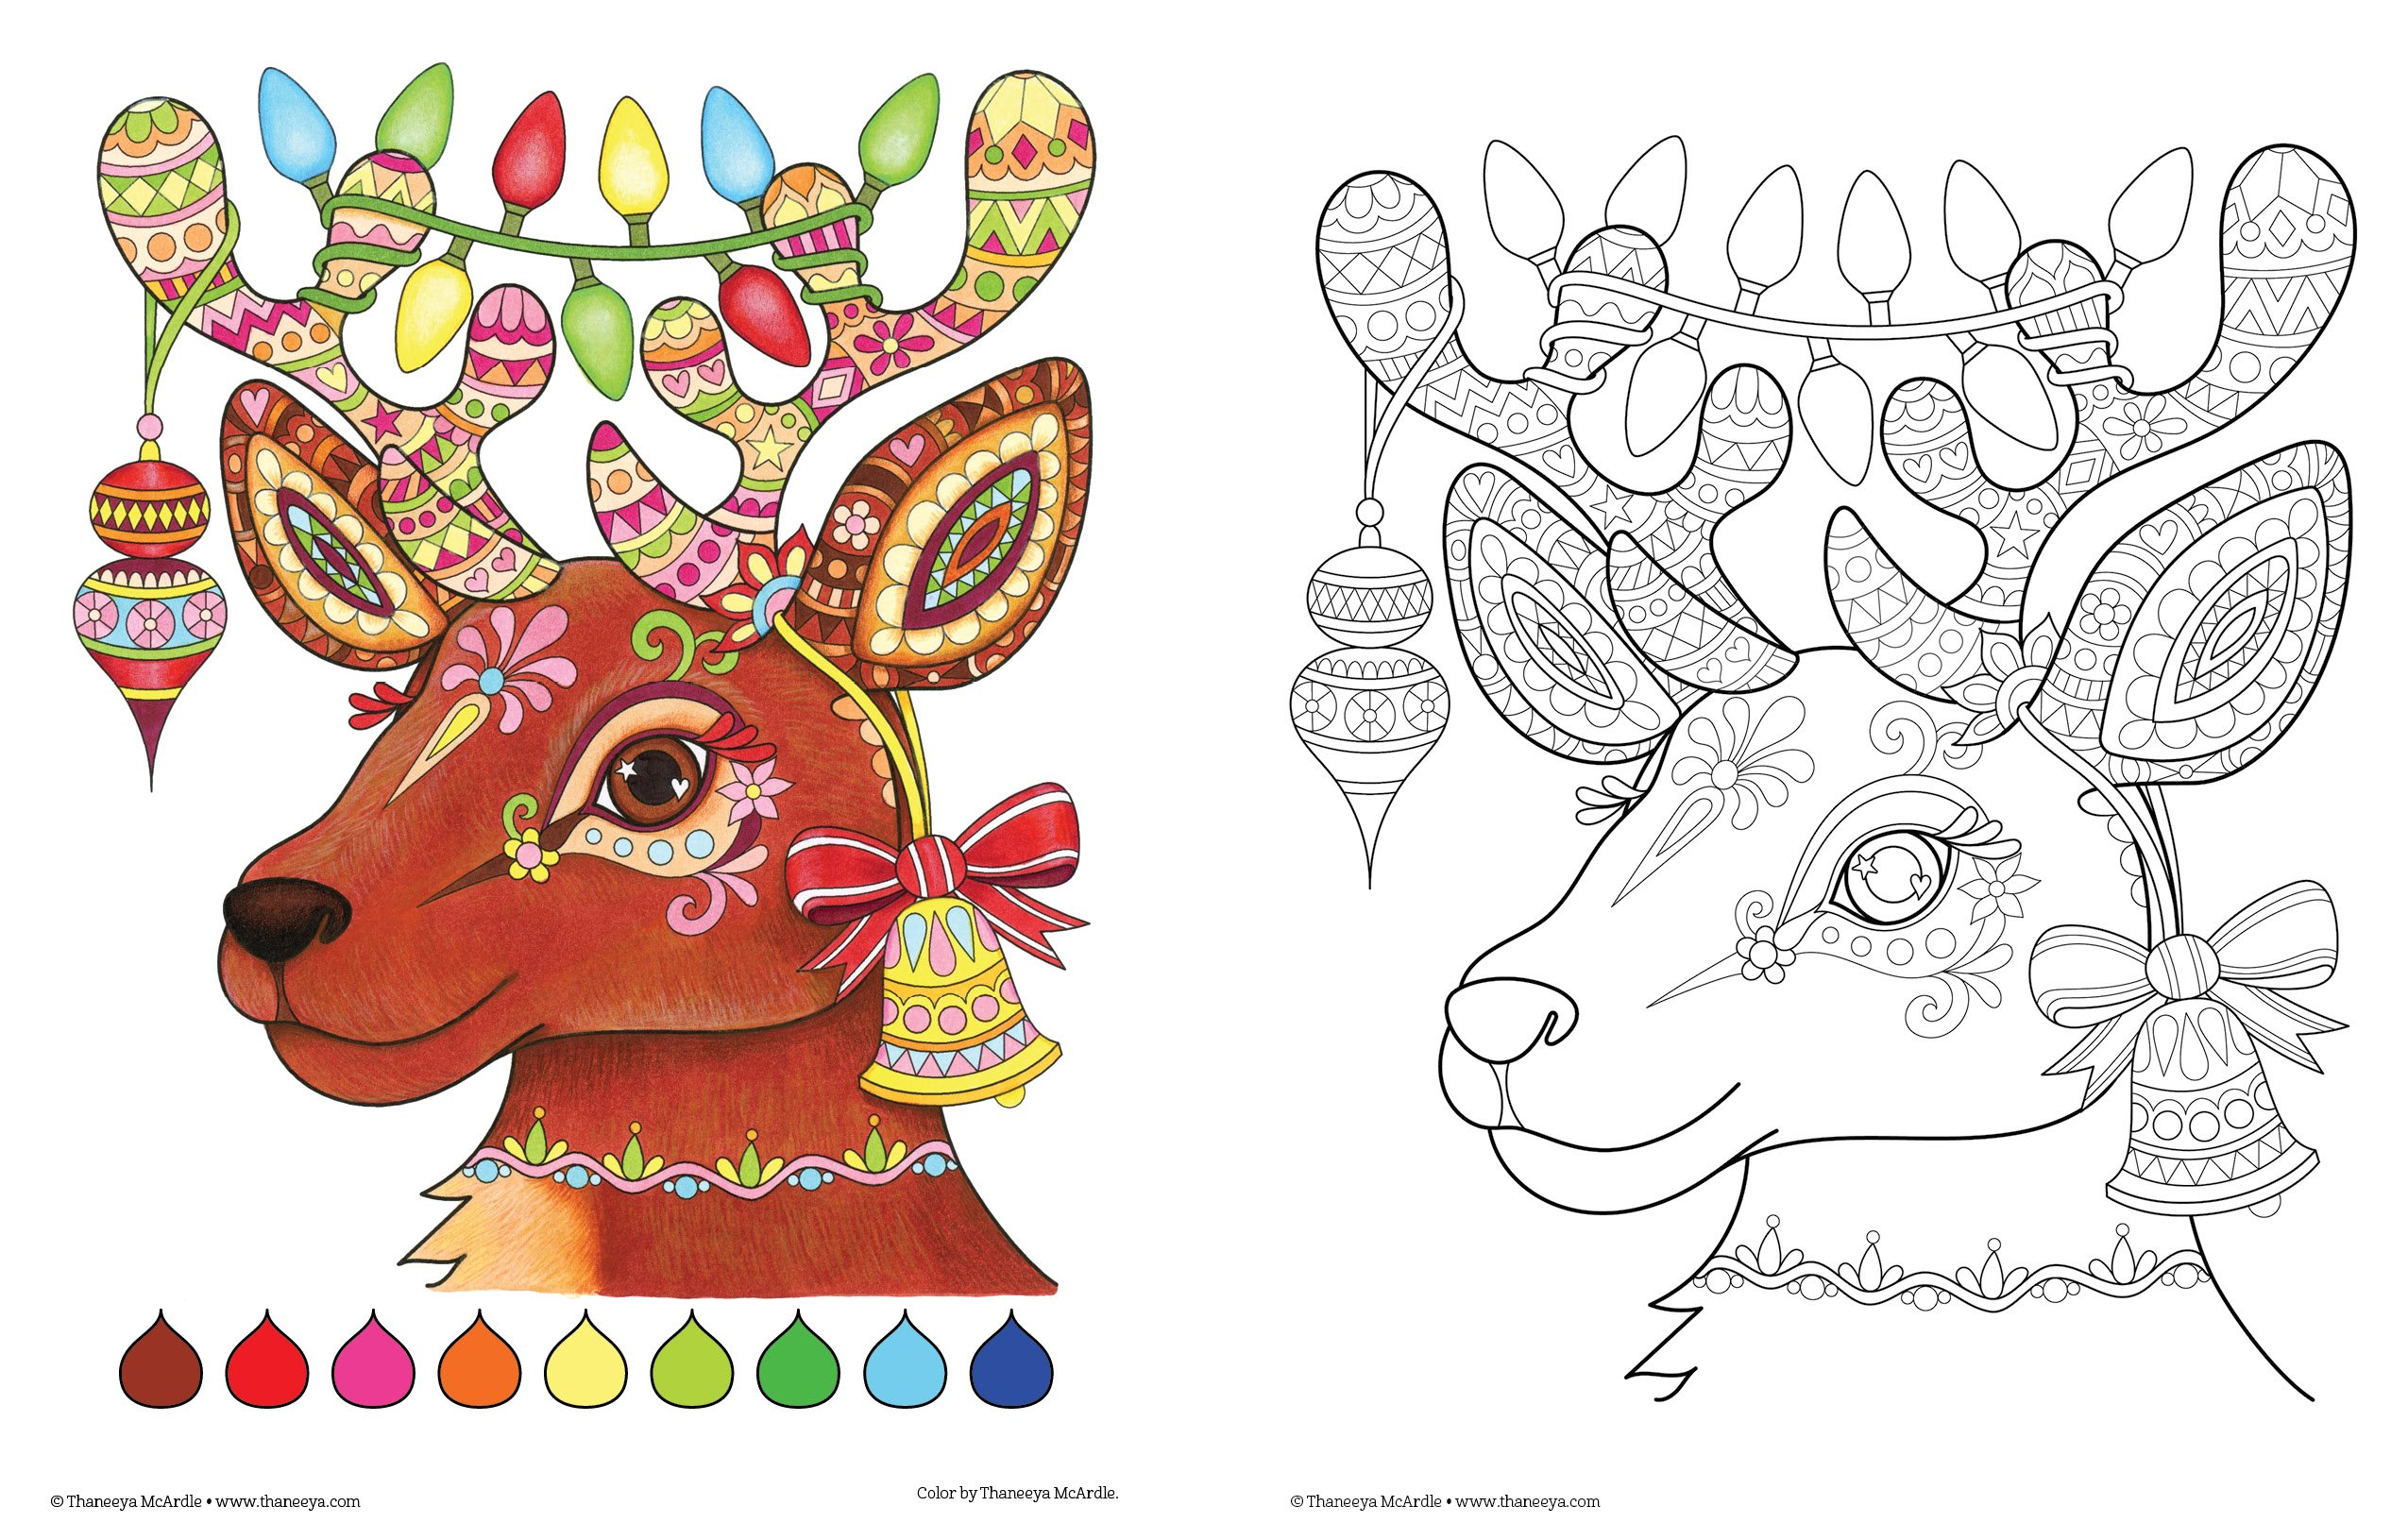 Amazon Christmas Coloring Book Is Fun Design Originals 32 Playful Holiday Art Activities From Thaneeya McArdle On High Quality